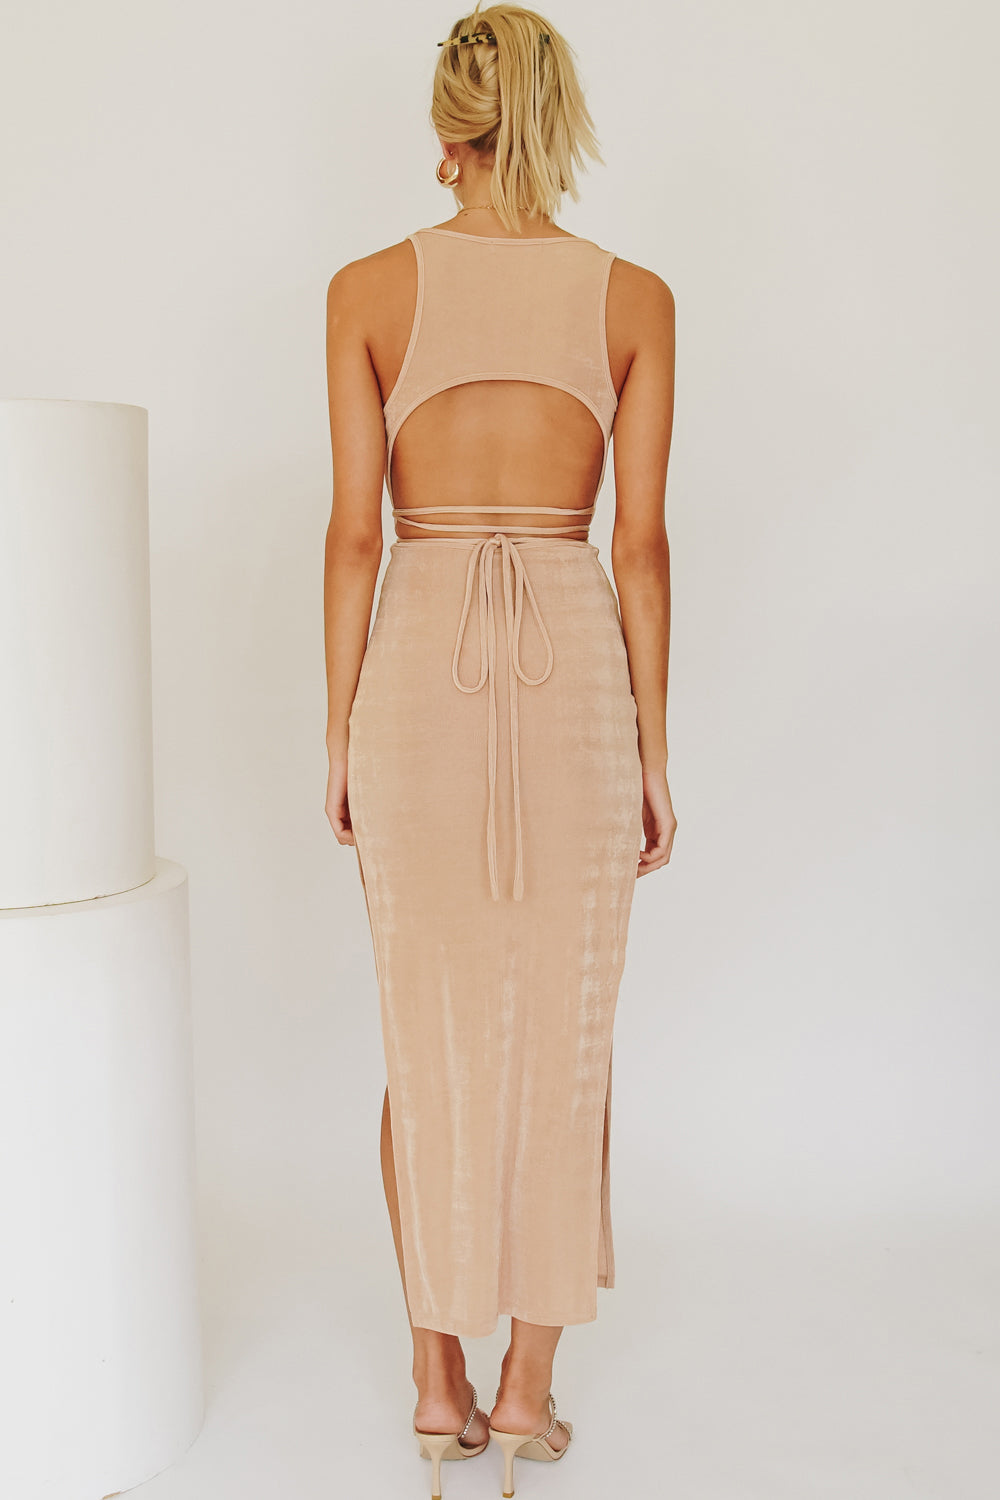 Fashion Shoot Tie Back Midi Dress // Nude